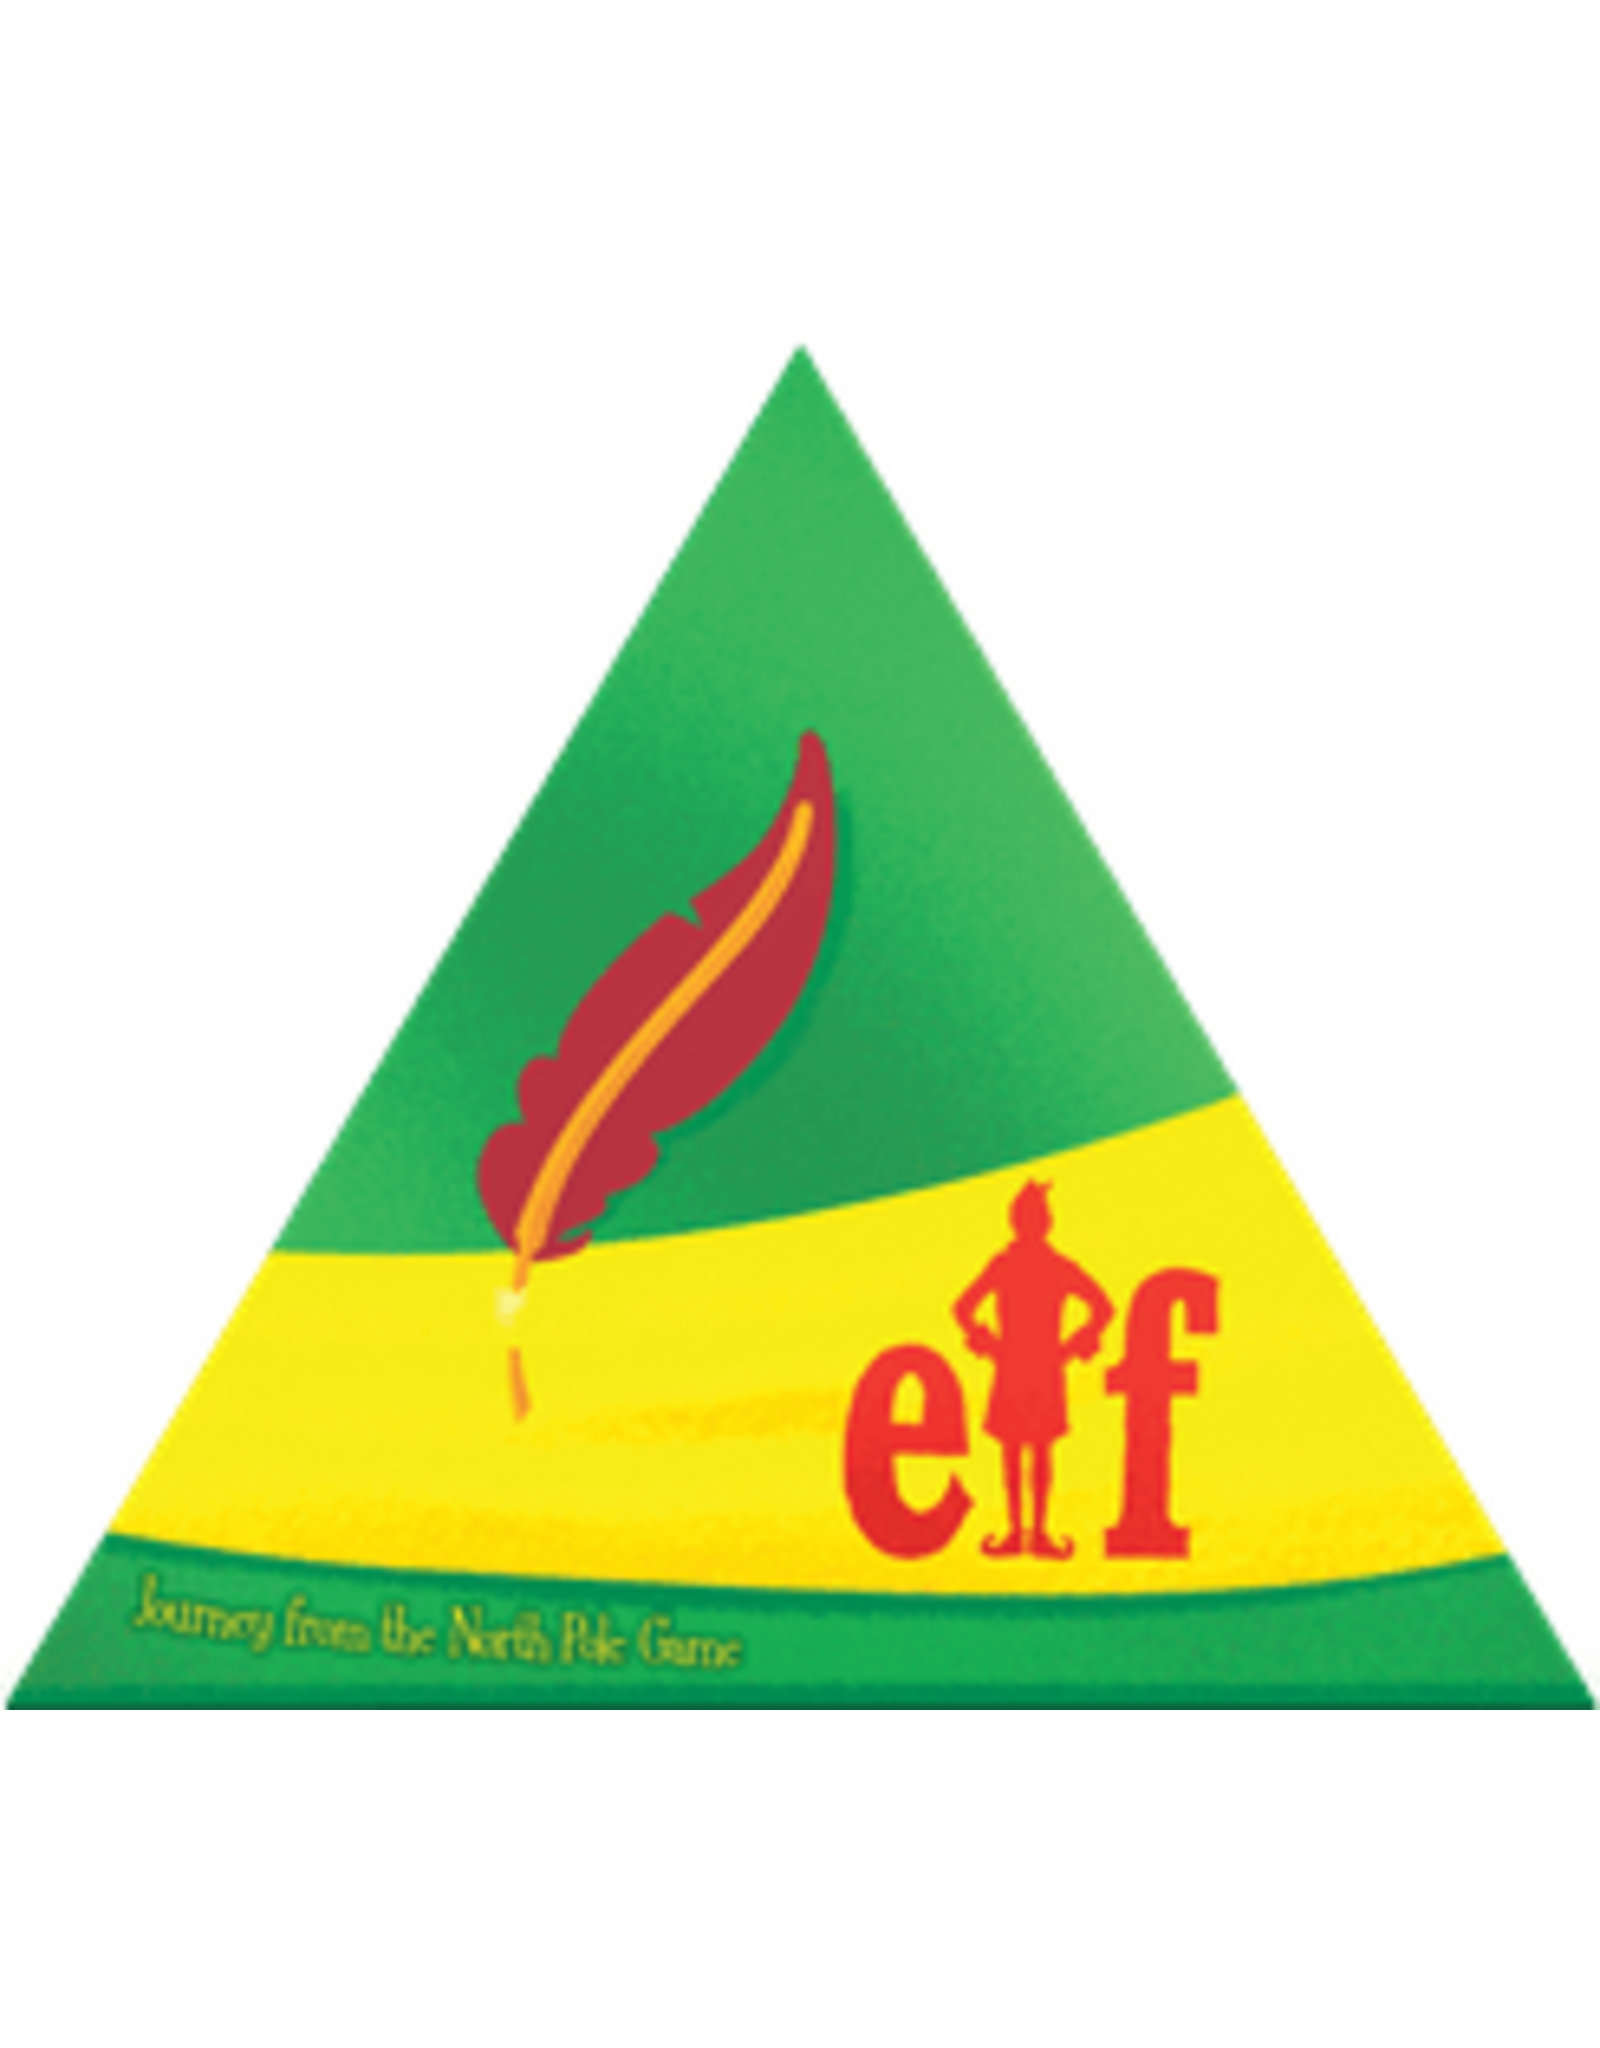 Funko Elf: Journey from the North Pole Game (ON SALE)